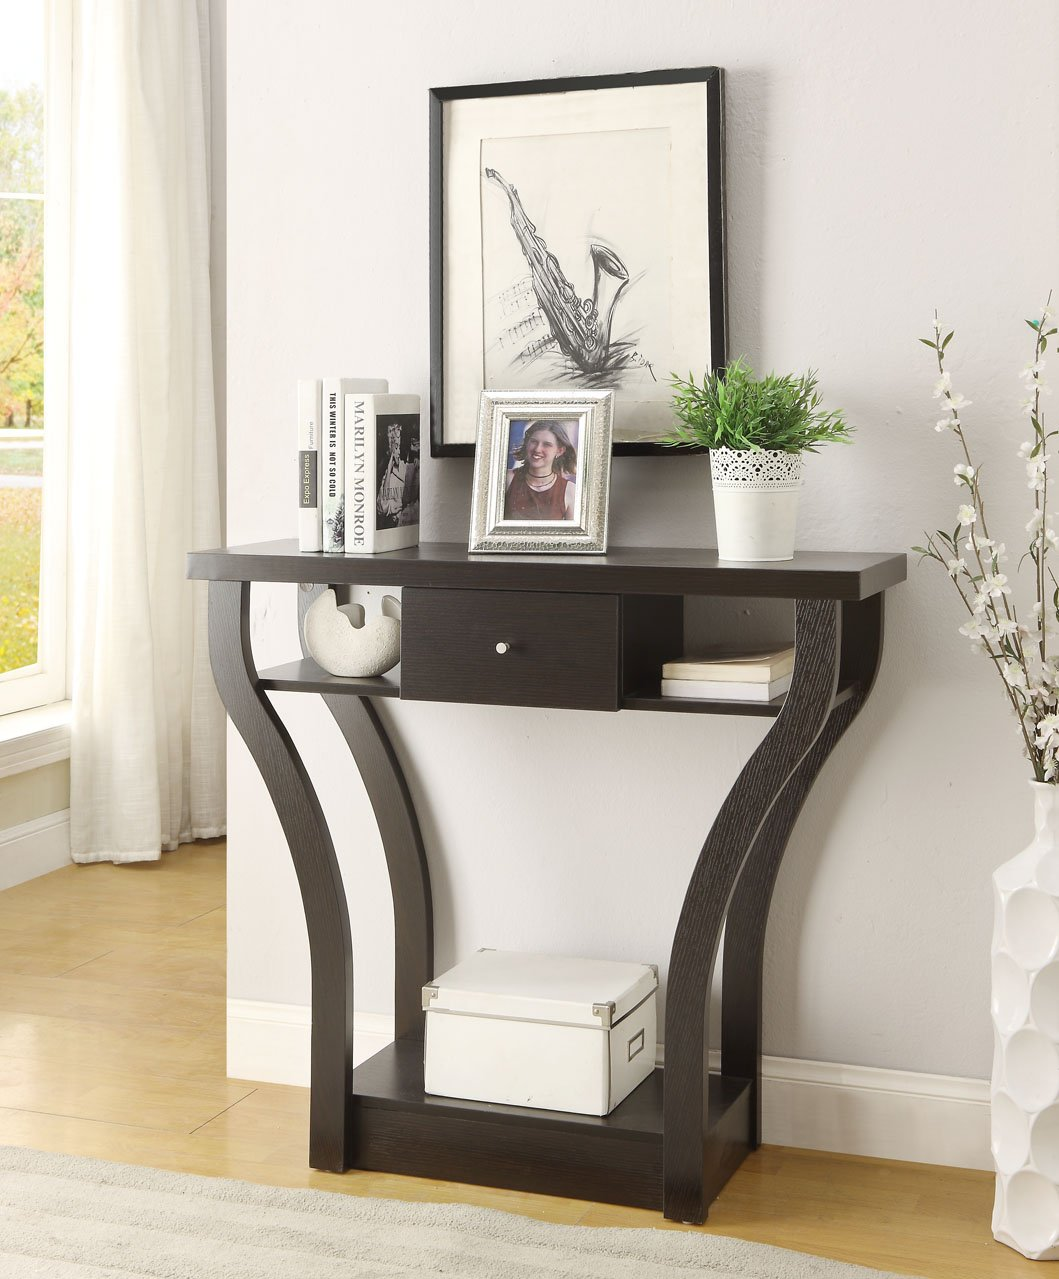 eHomeProducts Console Sofa Entry Hall Table with Shelf/Drawer Brown by eHomeProducts